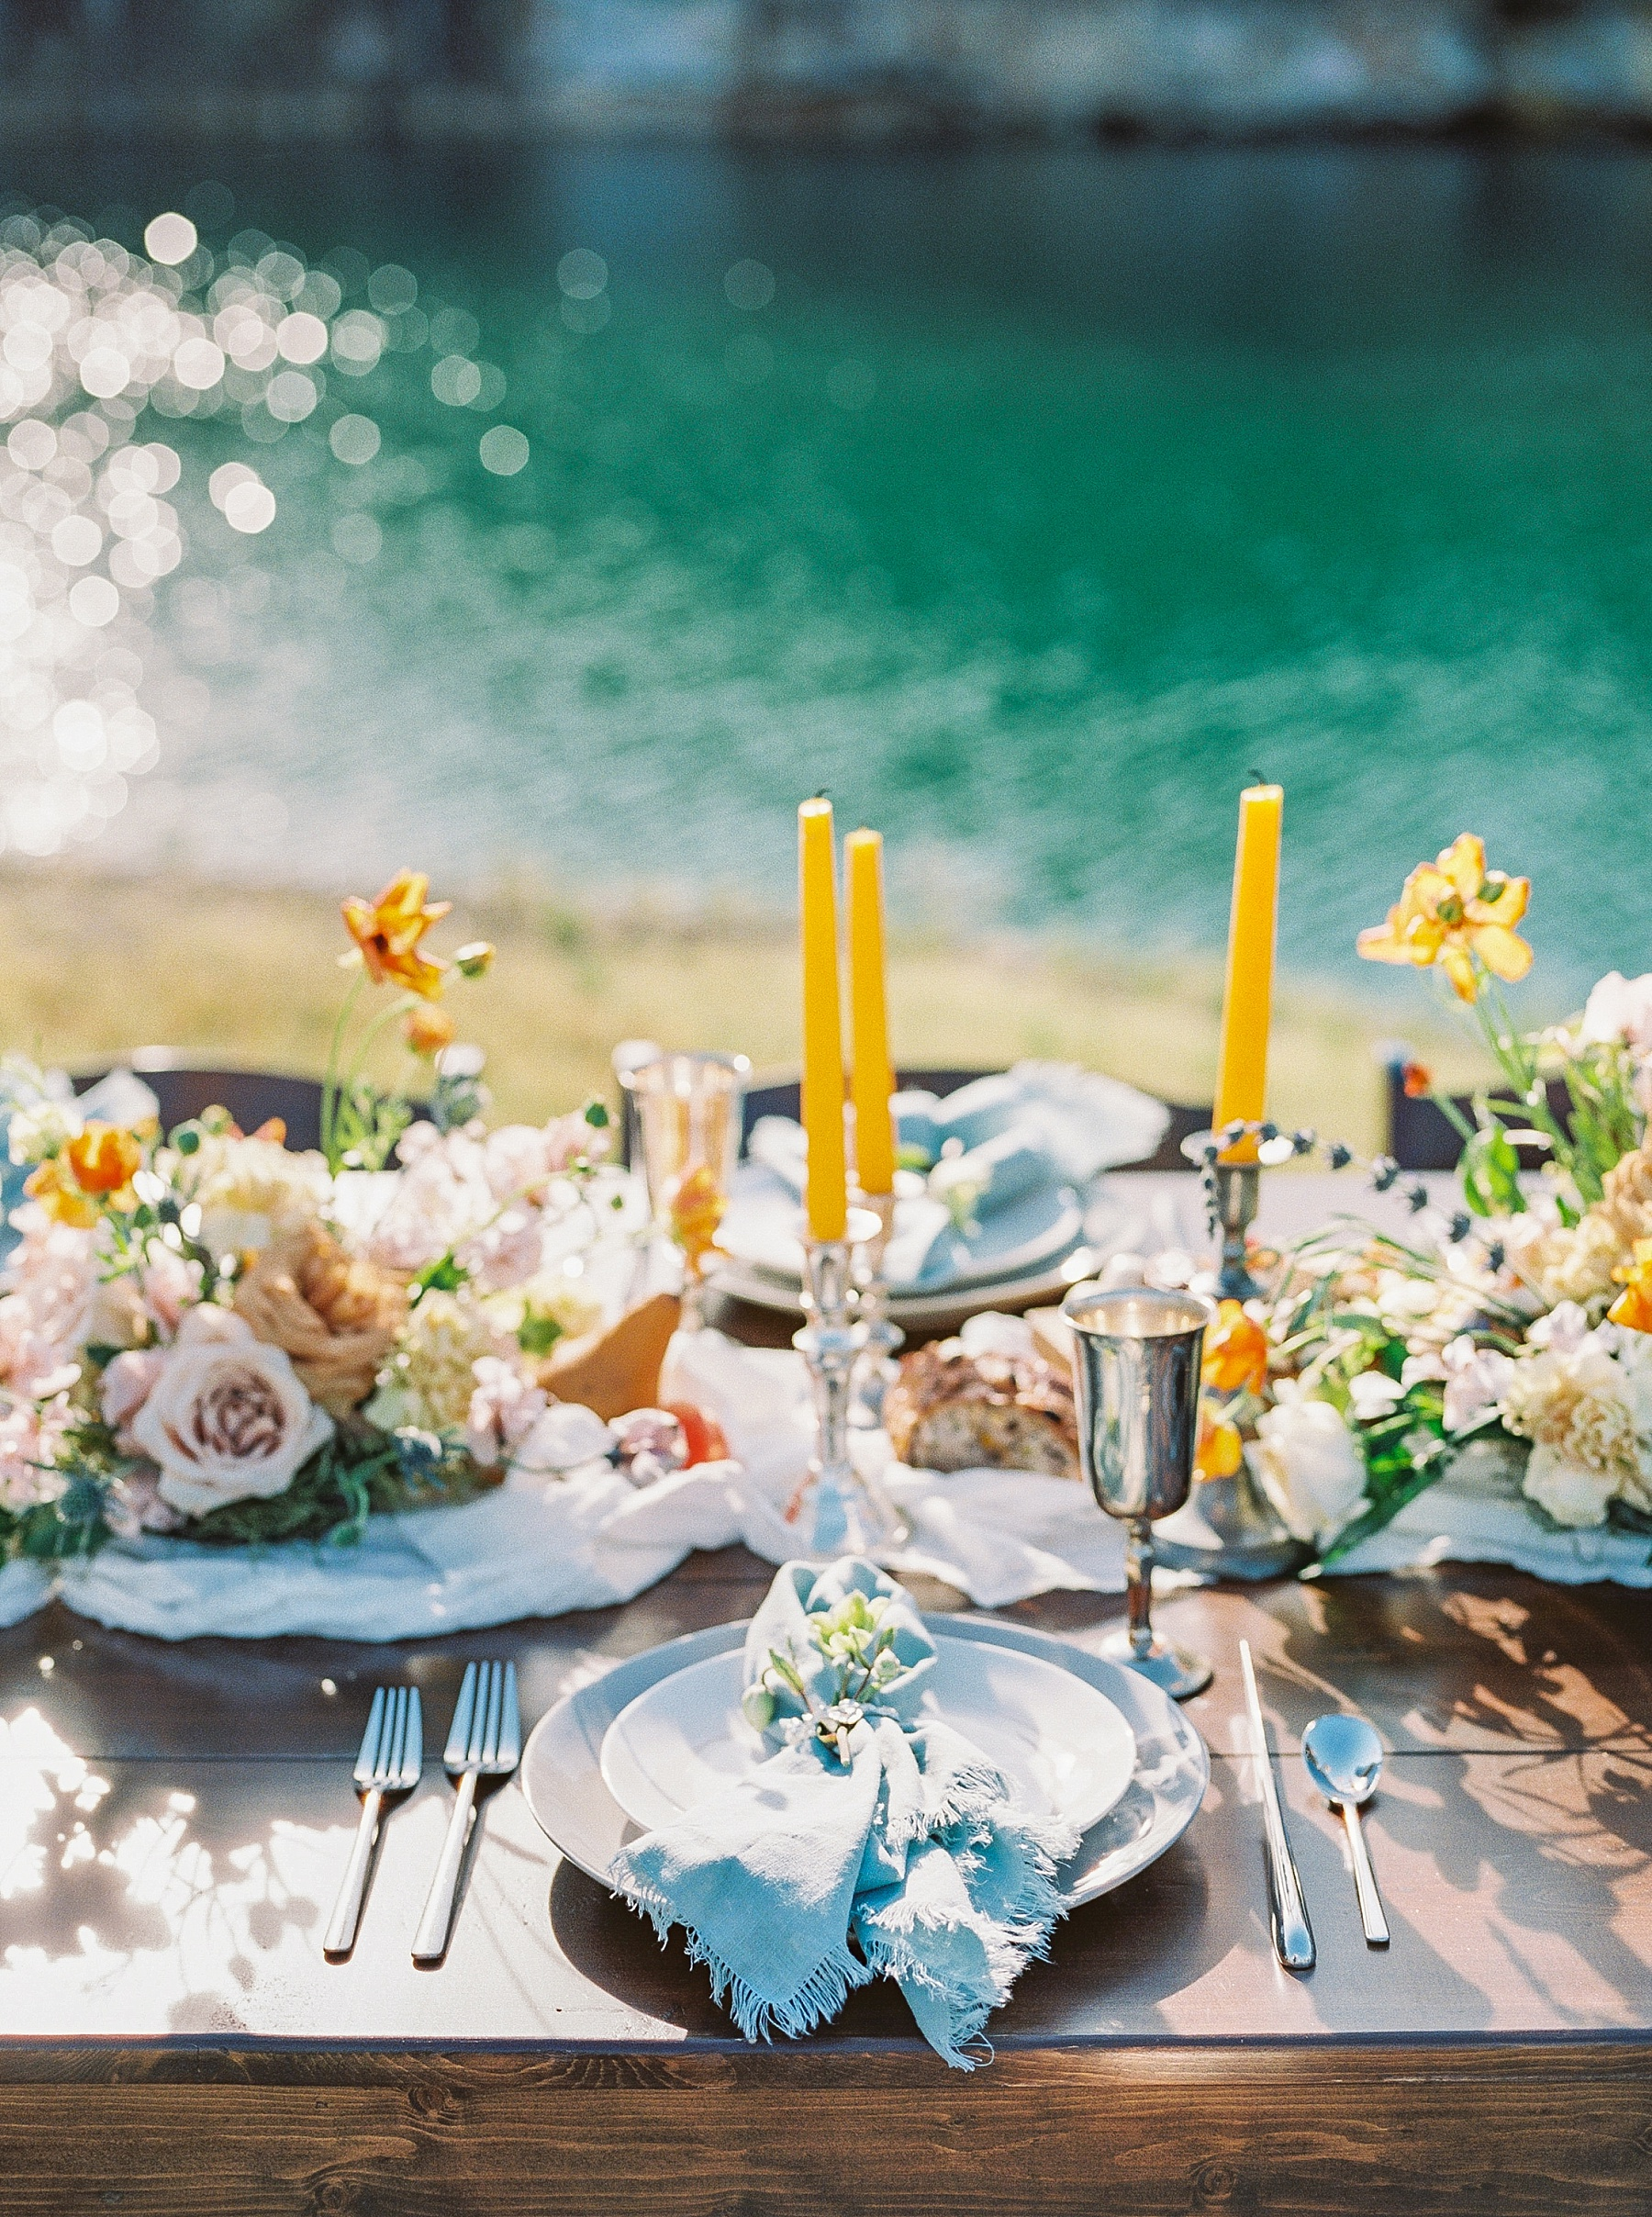 Intimate Spanish and French Inspired Destination Wedding with Lakeside Dinner Party at Dusk at Wildcliff by Kelsi Kliethermes Photography Best Missouri and Maui Wedding Photographer_0067.jpg